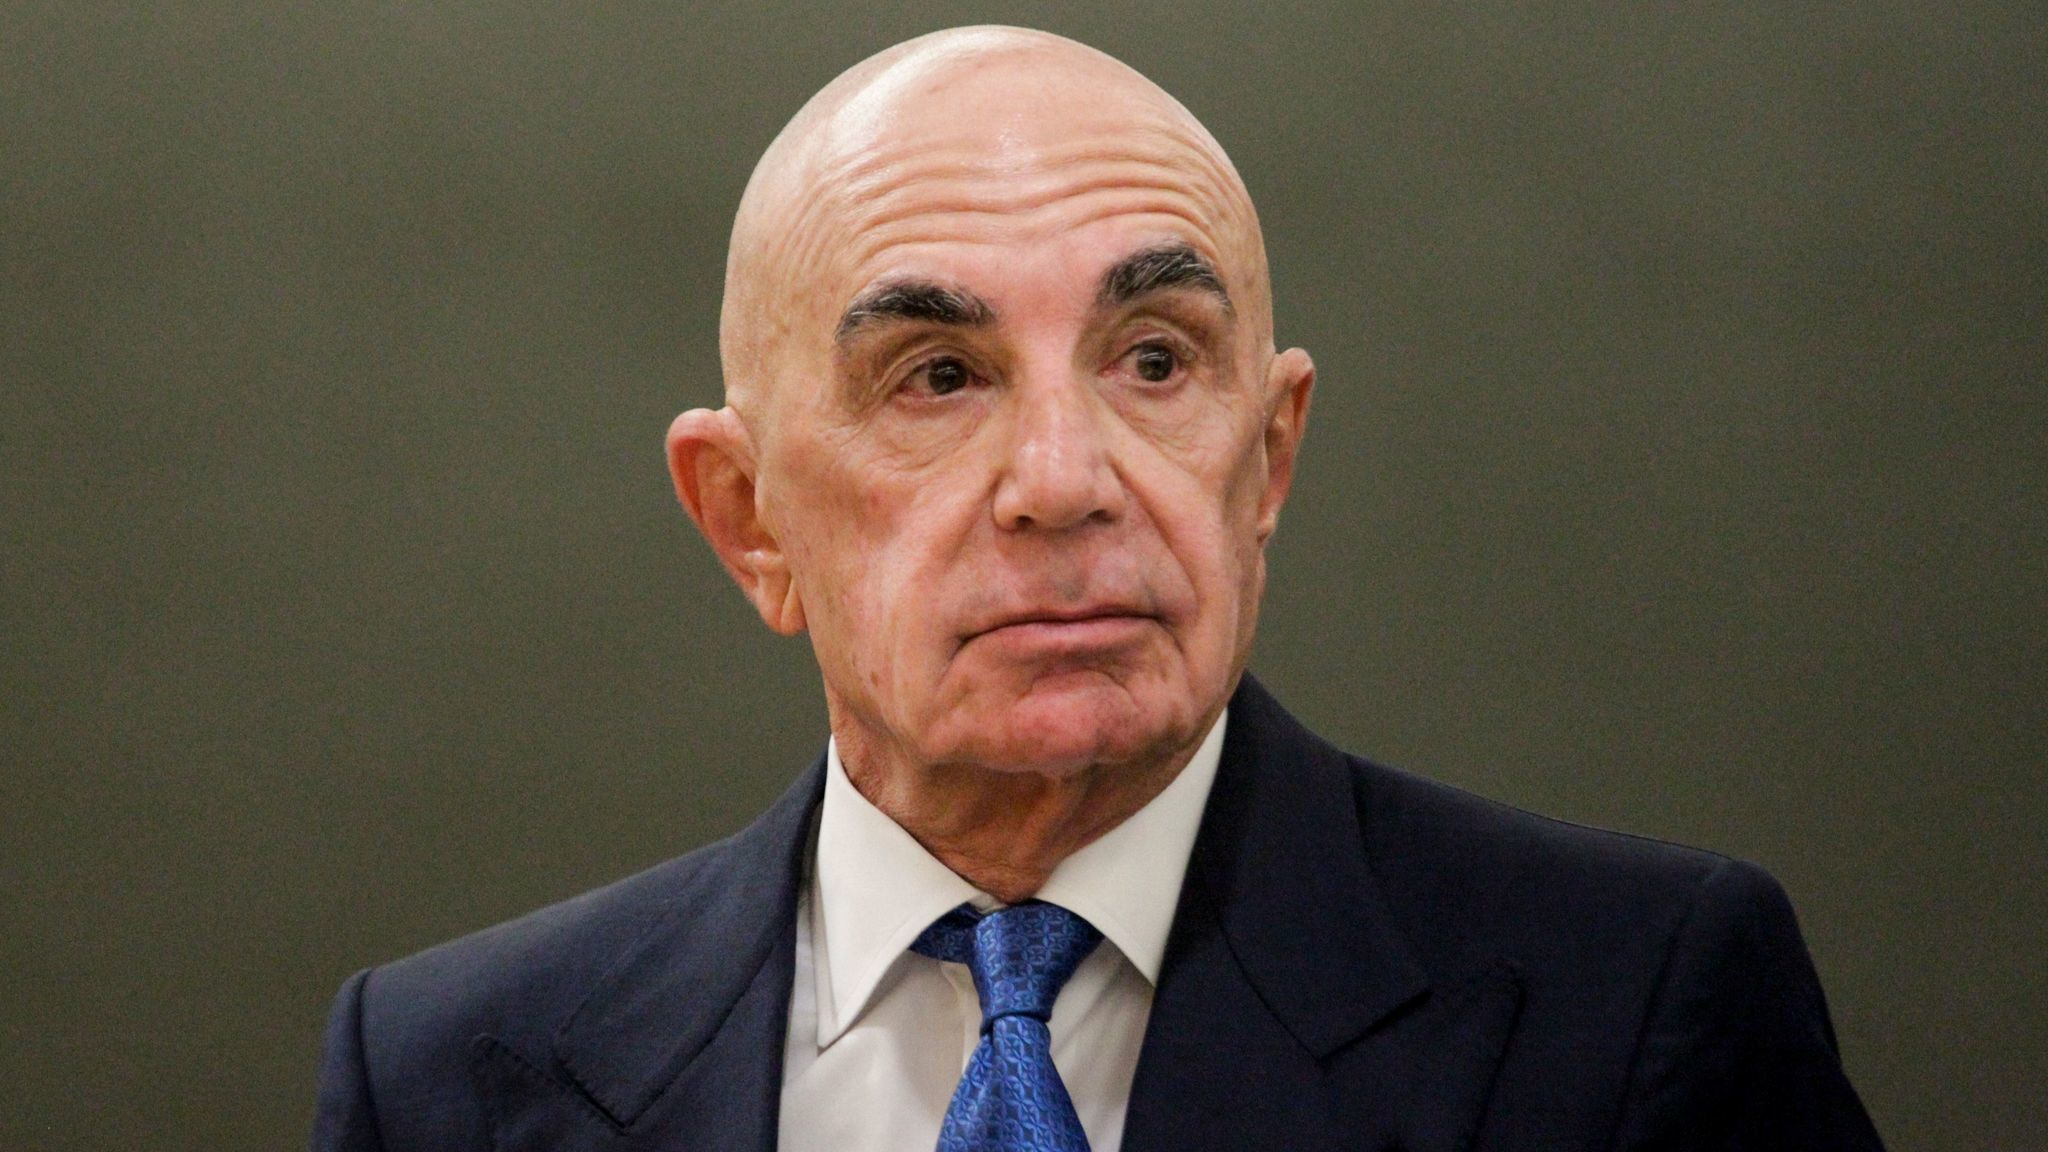 Attorney Robert Shapiro, who is representing developer Mohamed Hadid, at a hearing at the Van Nuys Courthouse this month.